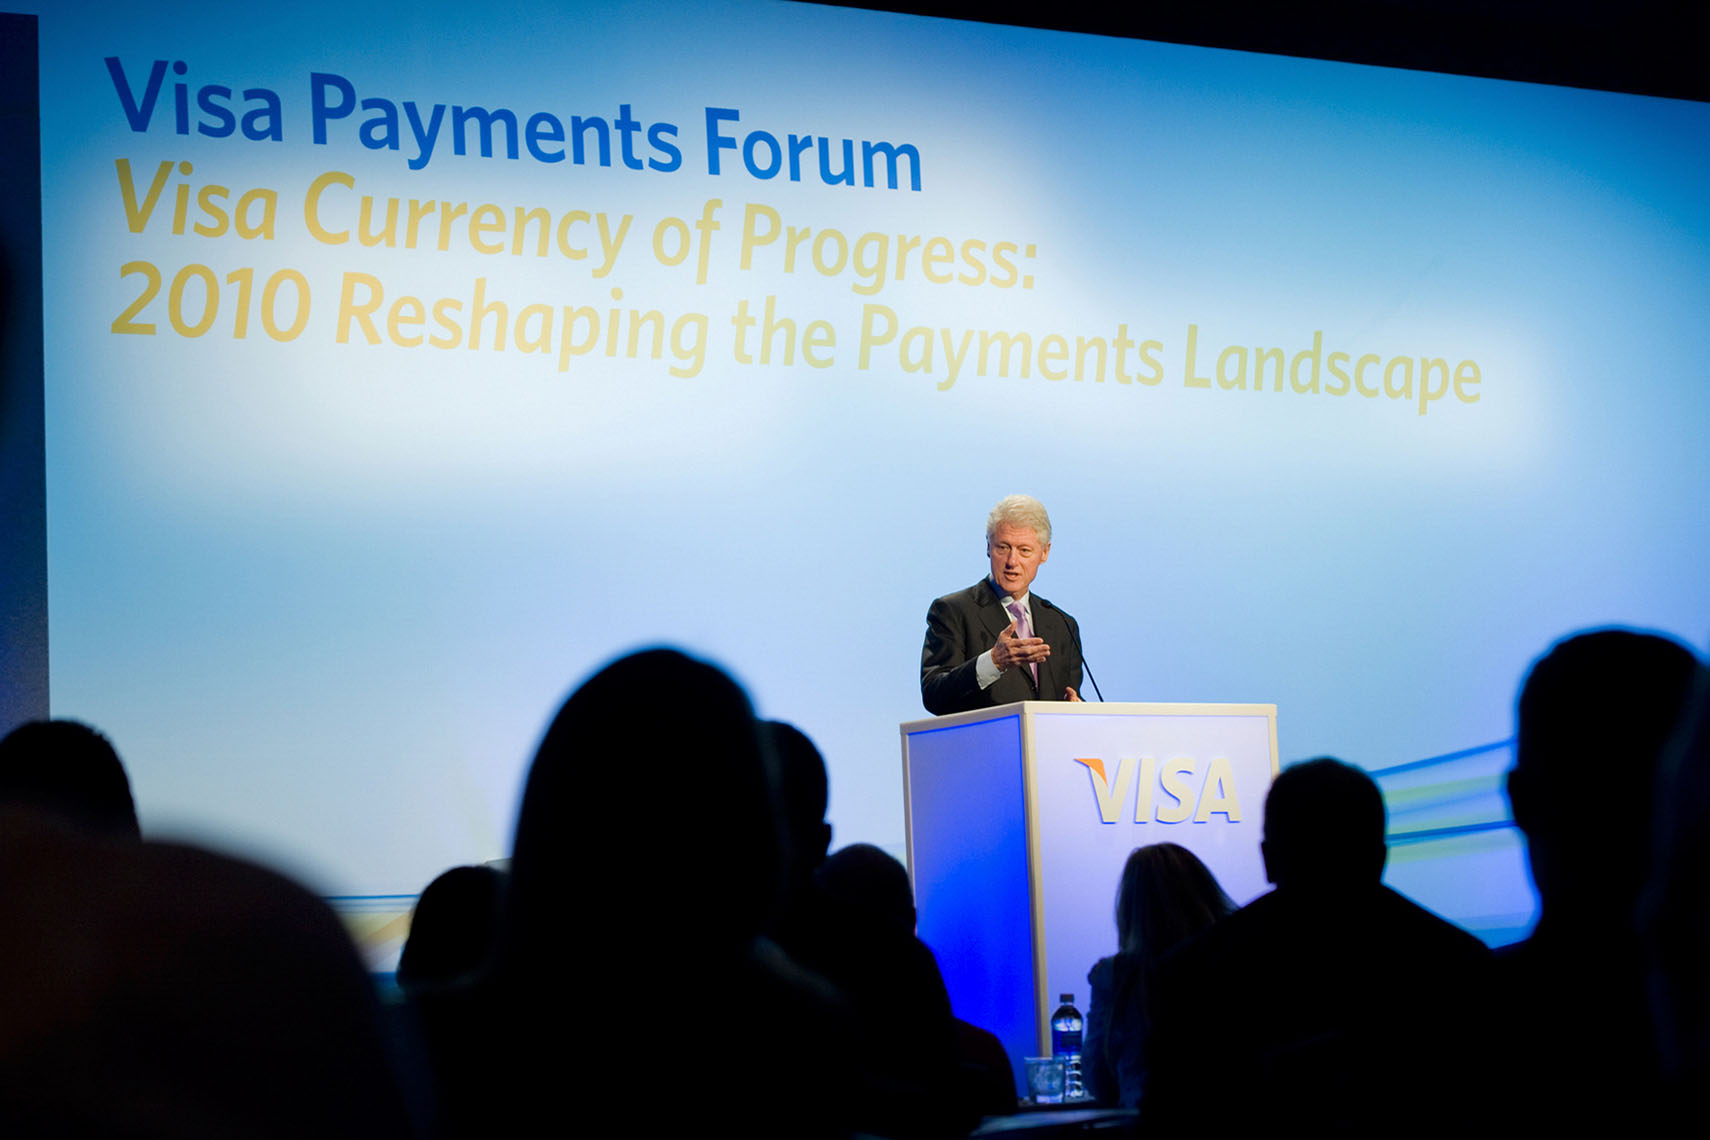 Bill Clinton at Visa Payments Forum